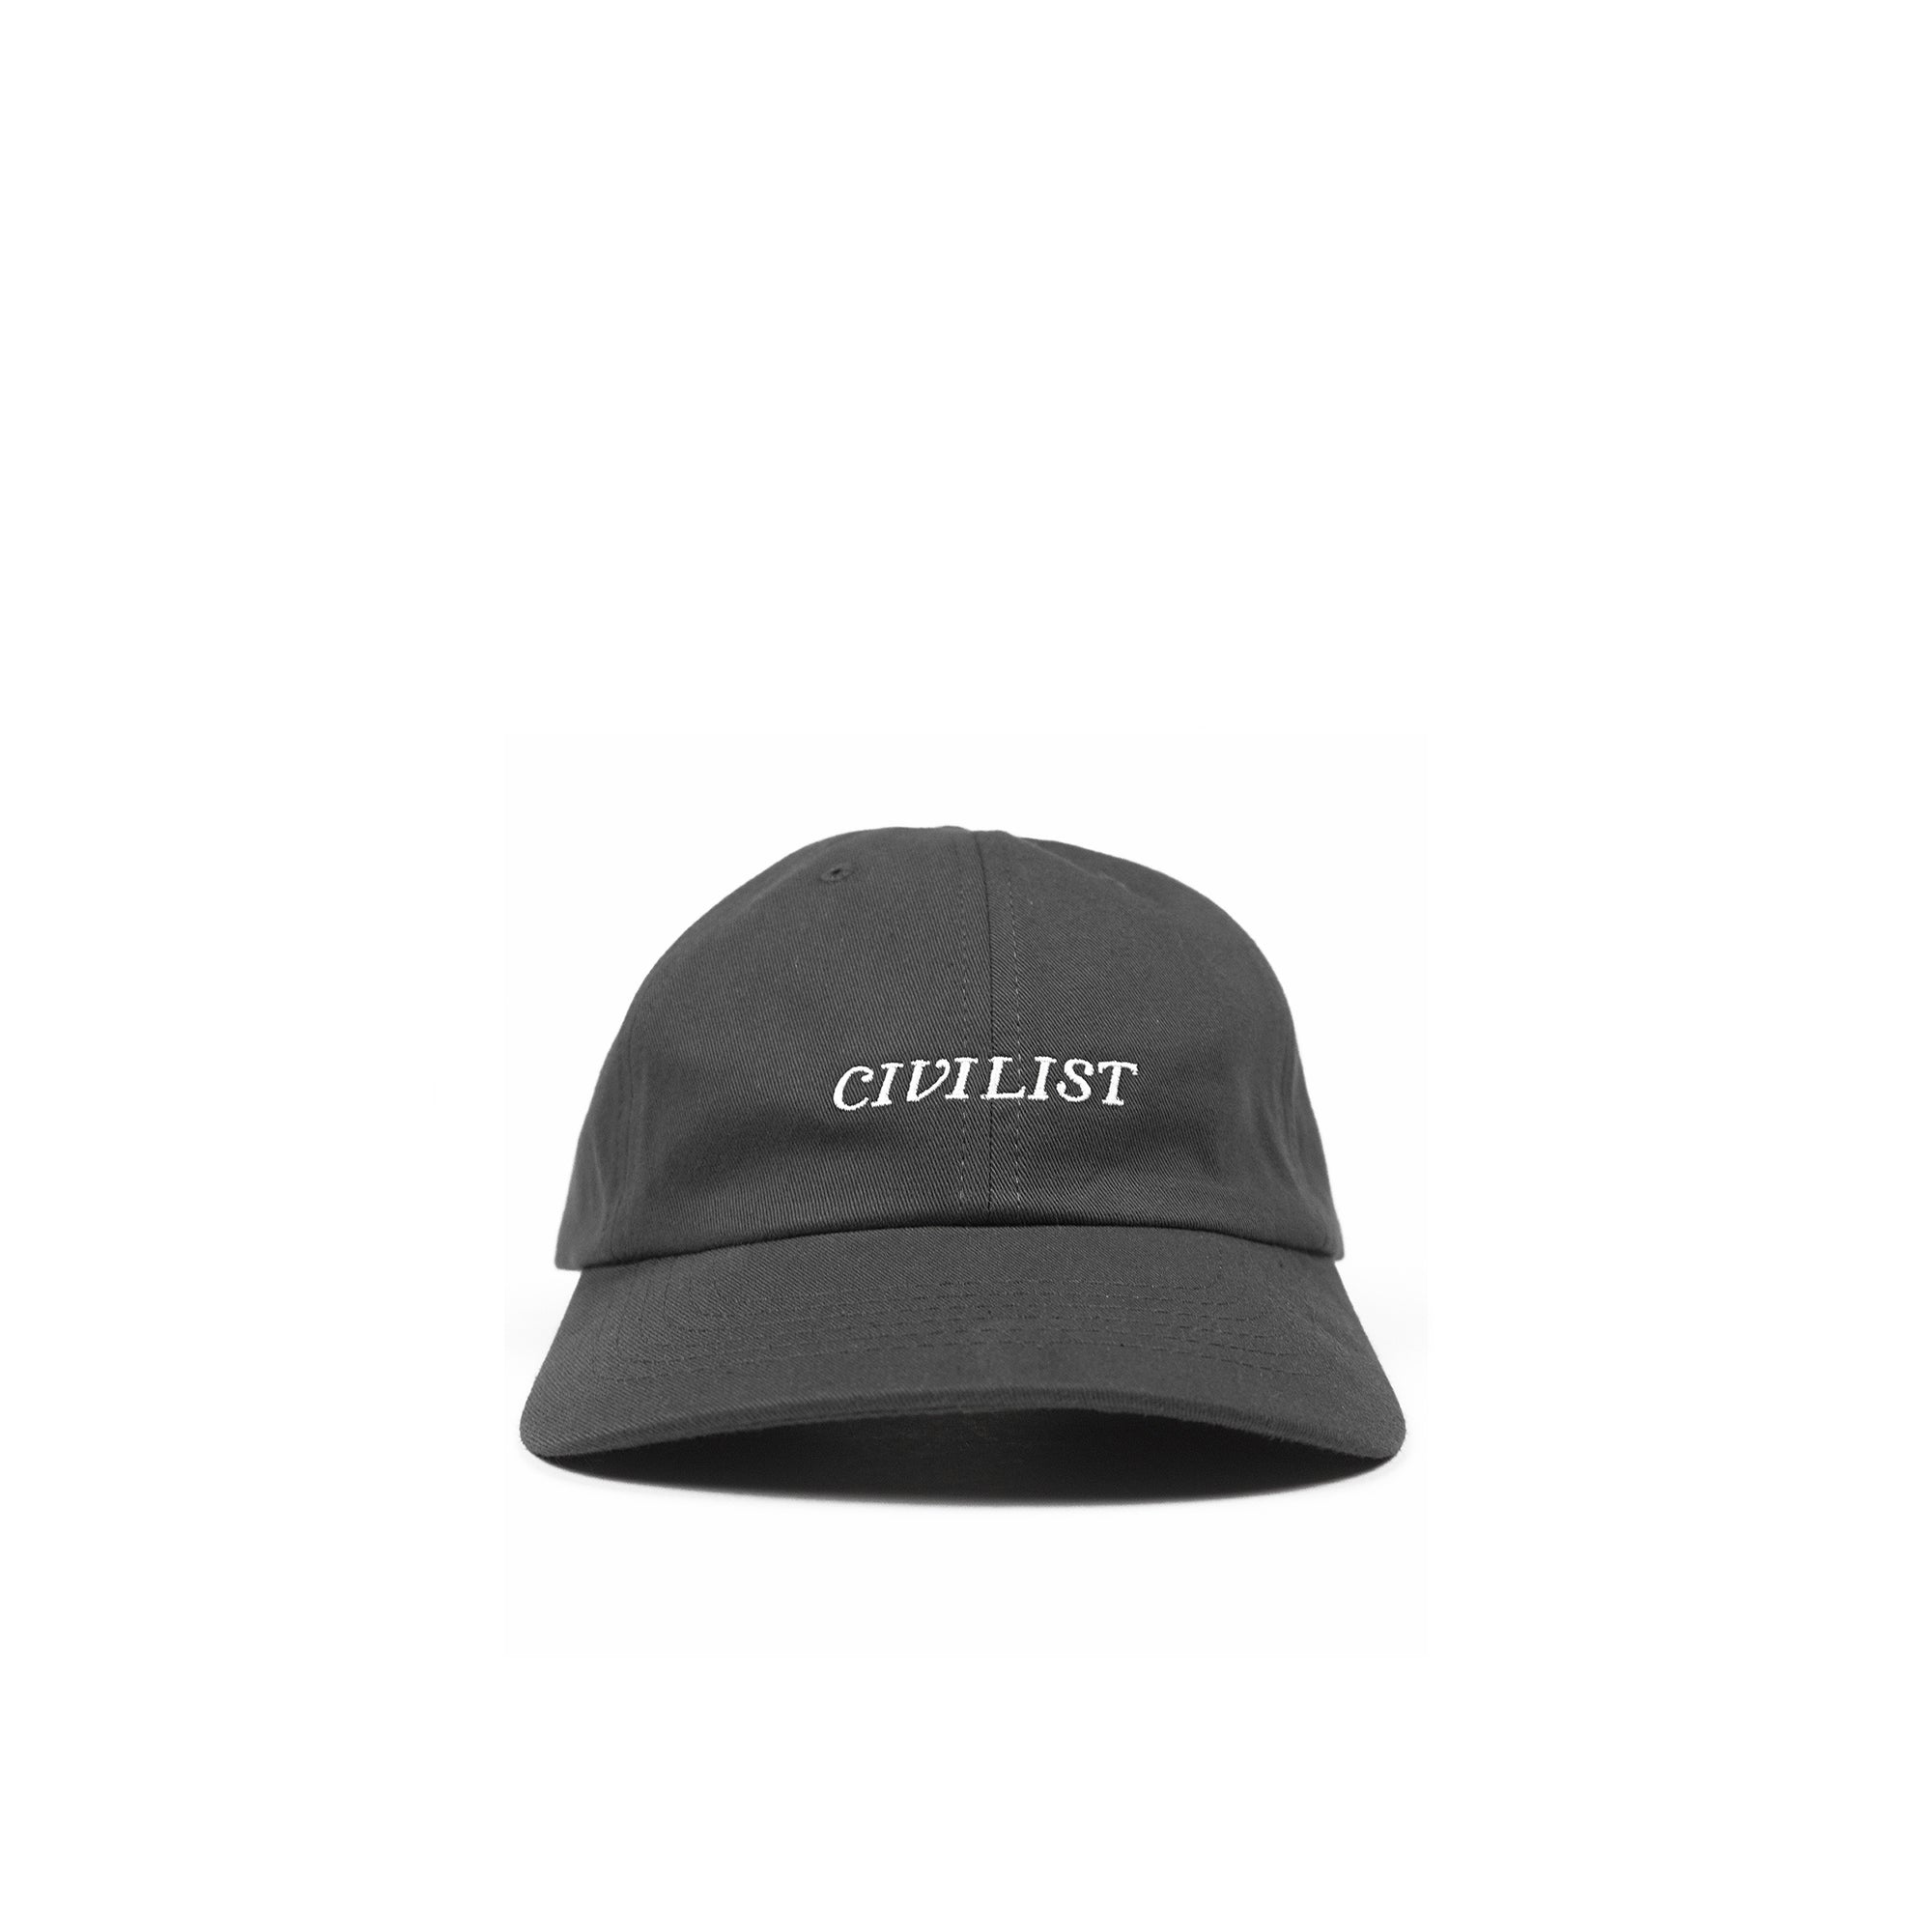 Civilist Sports Cap: Charcoal / White - The Union Project